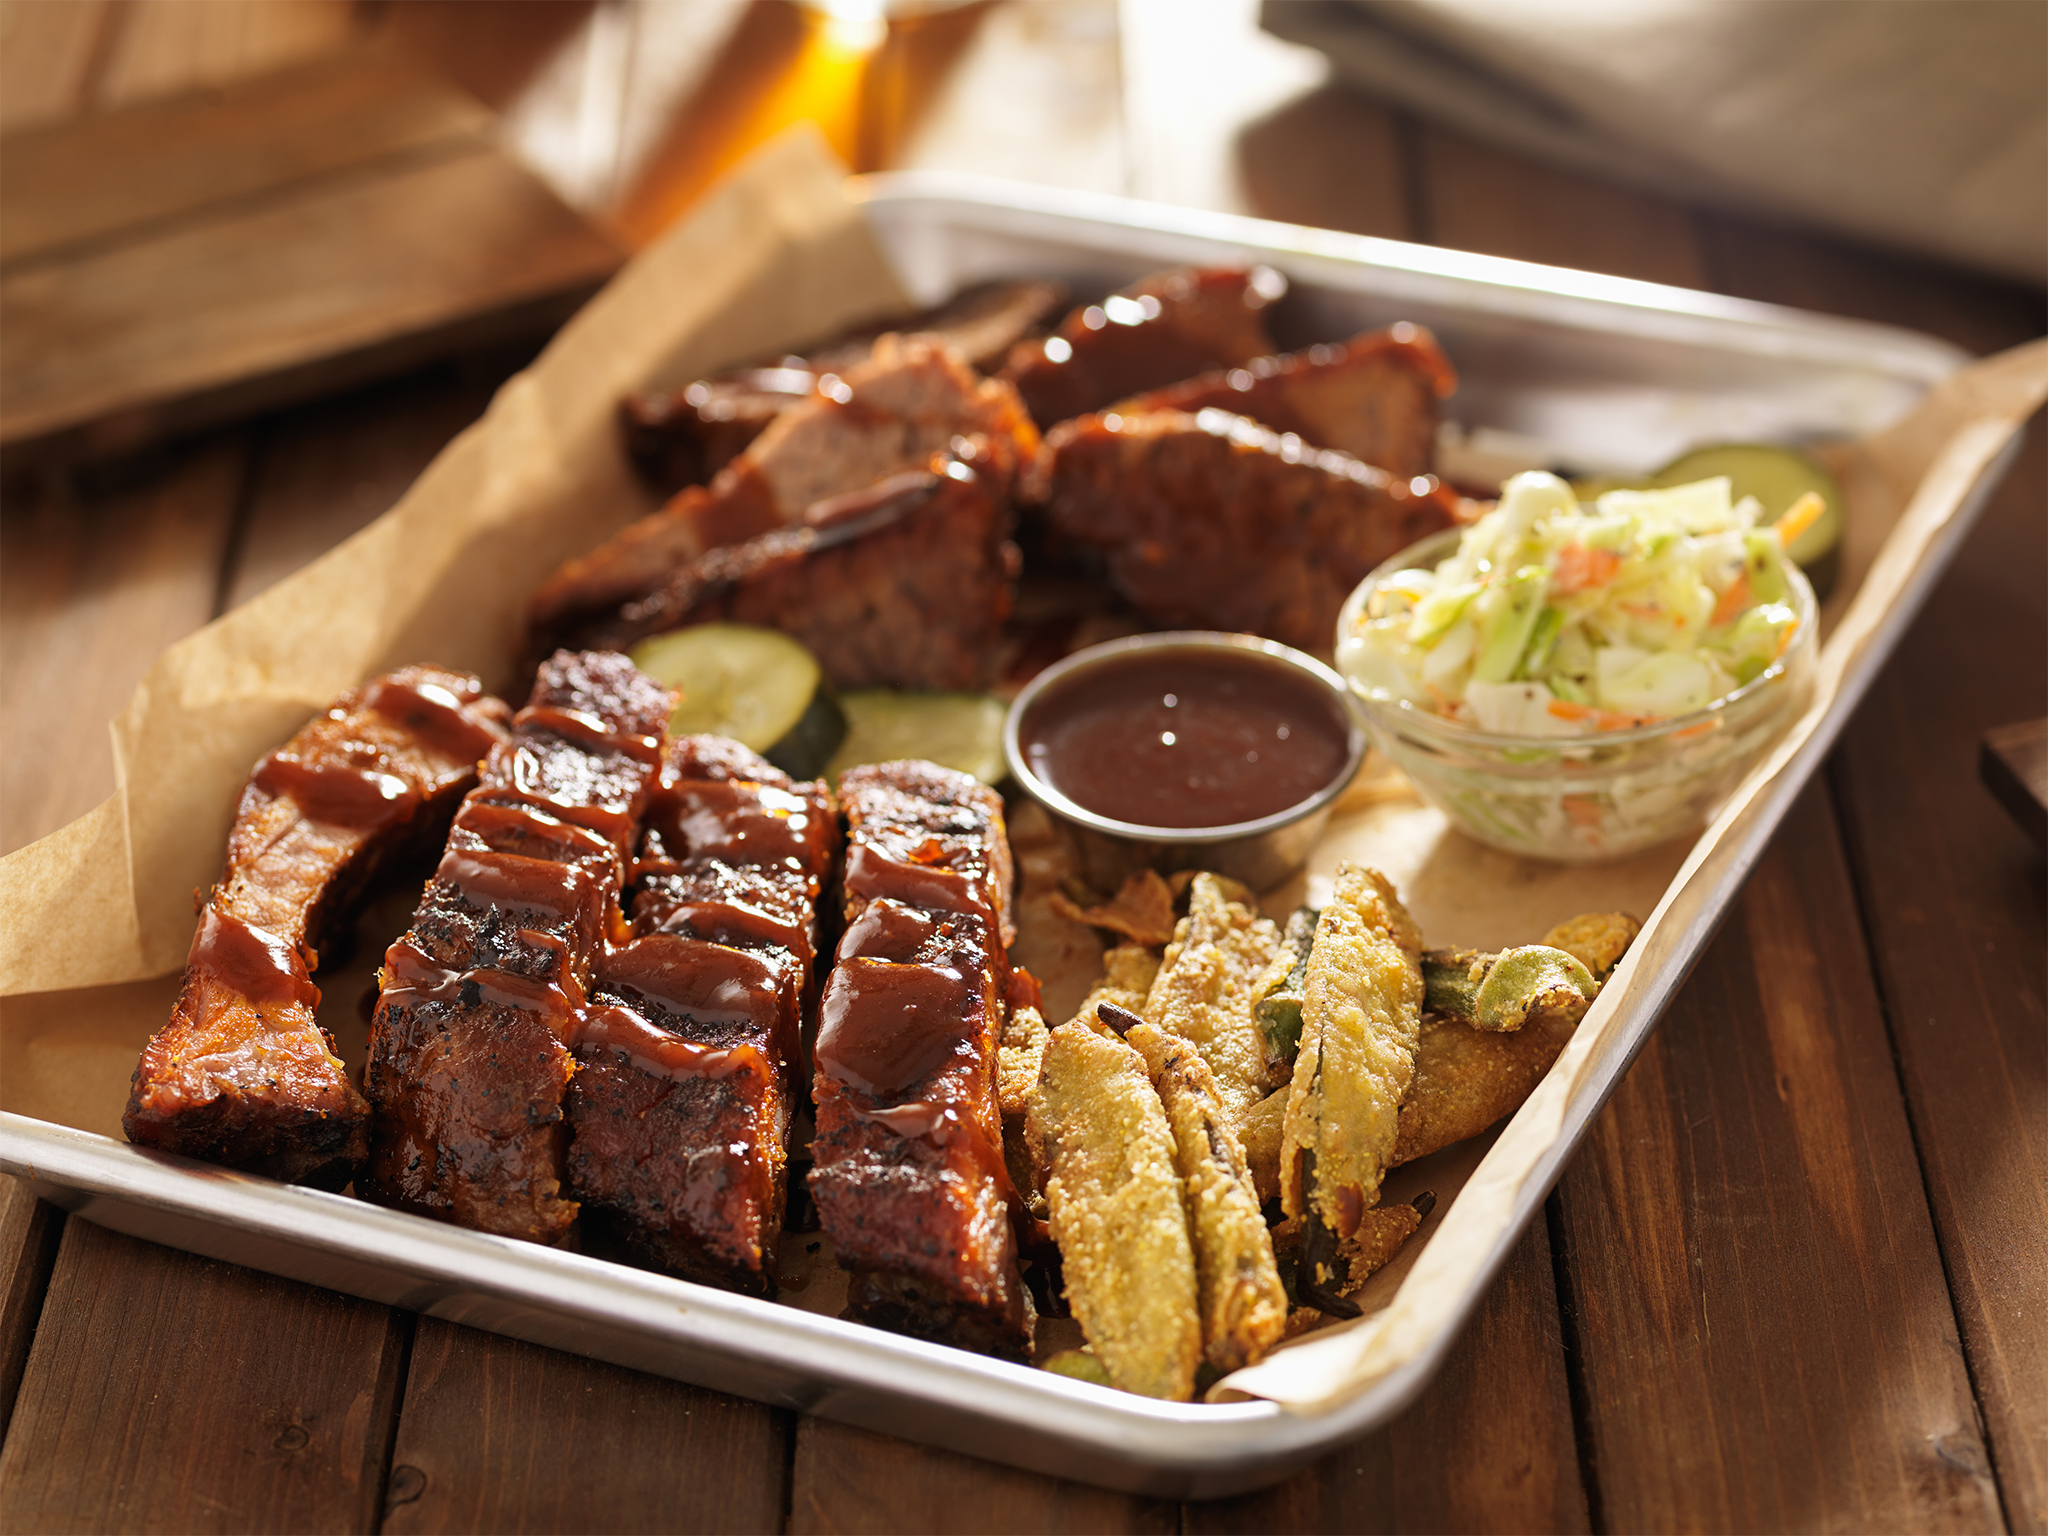 Note: This image was not taken at the featured venue. barbecue ribs with brisket, fried okrra and  cole slaw on tray